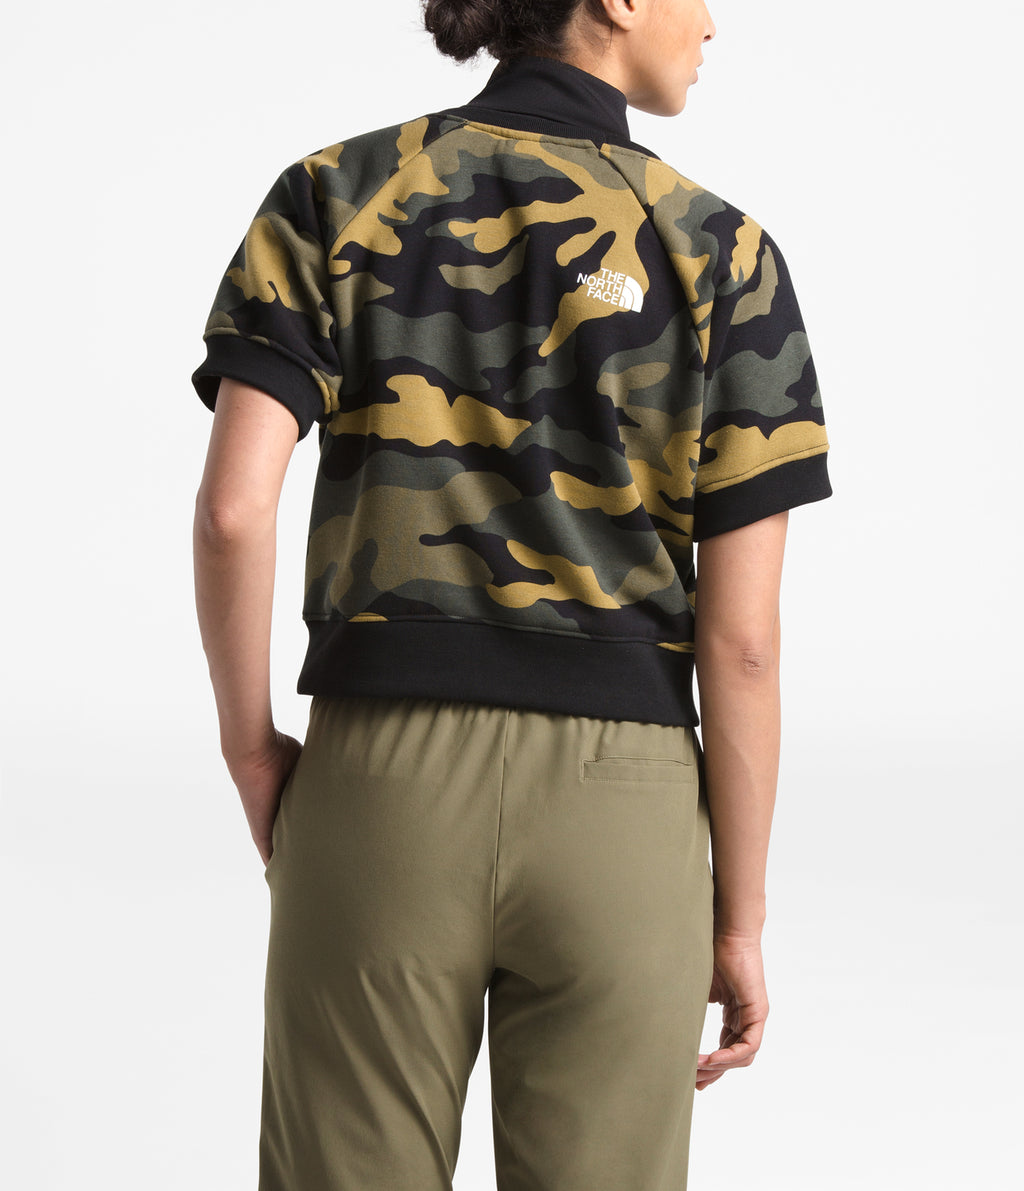 GRAPHIC COLLECTION SHORT-SLEEVE CREW - BURNT OLIVE GREEN WOODS CAMO PRINT